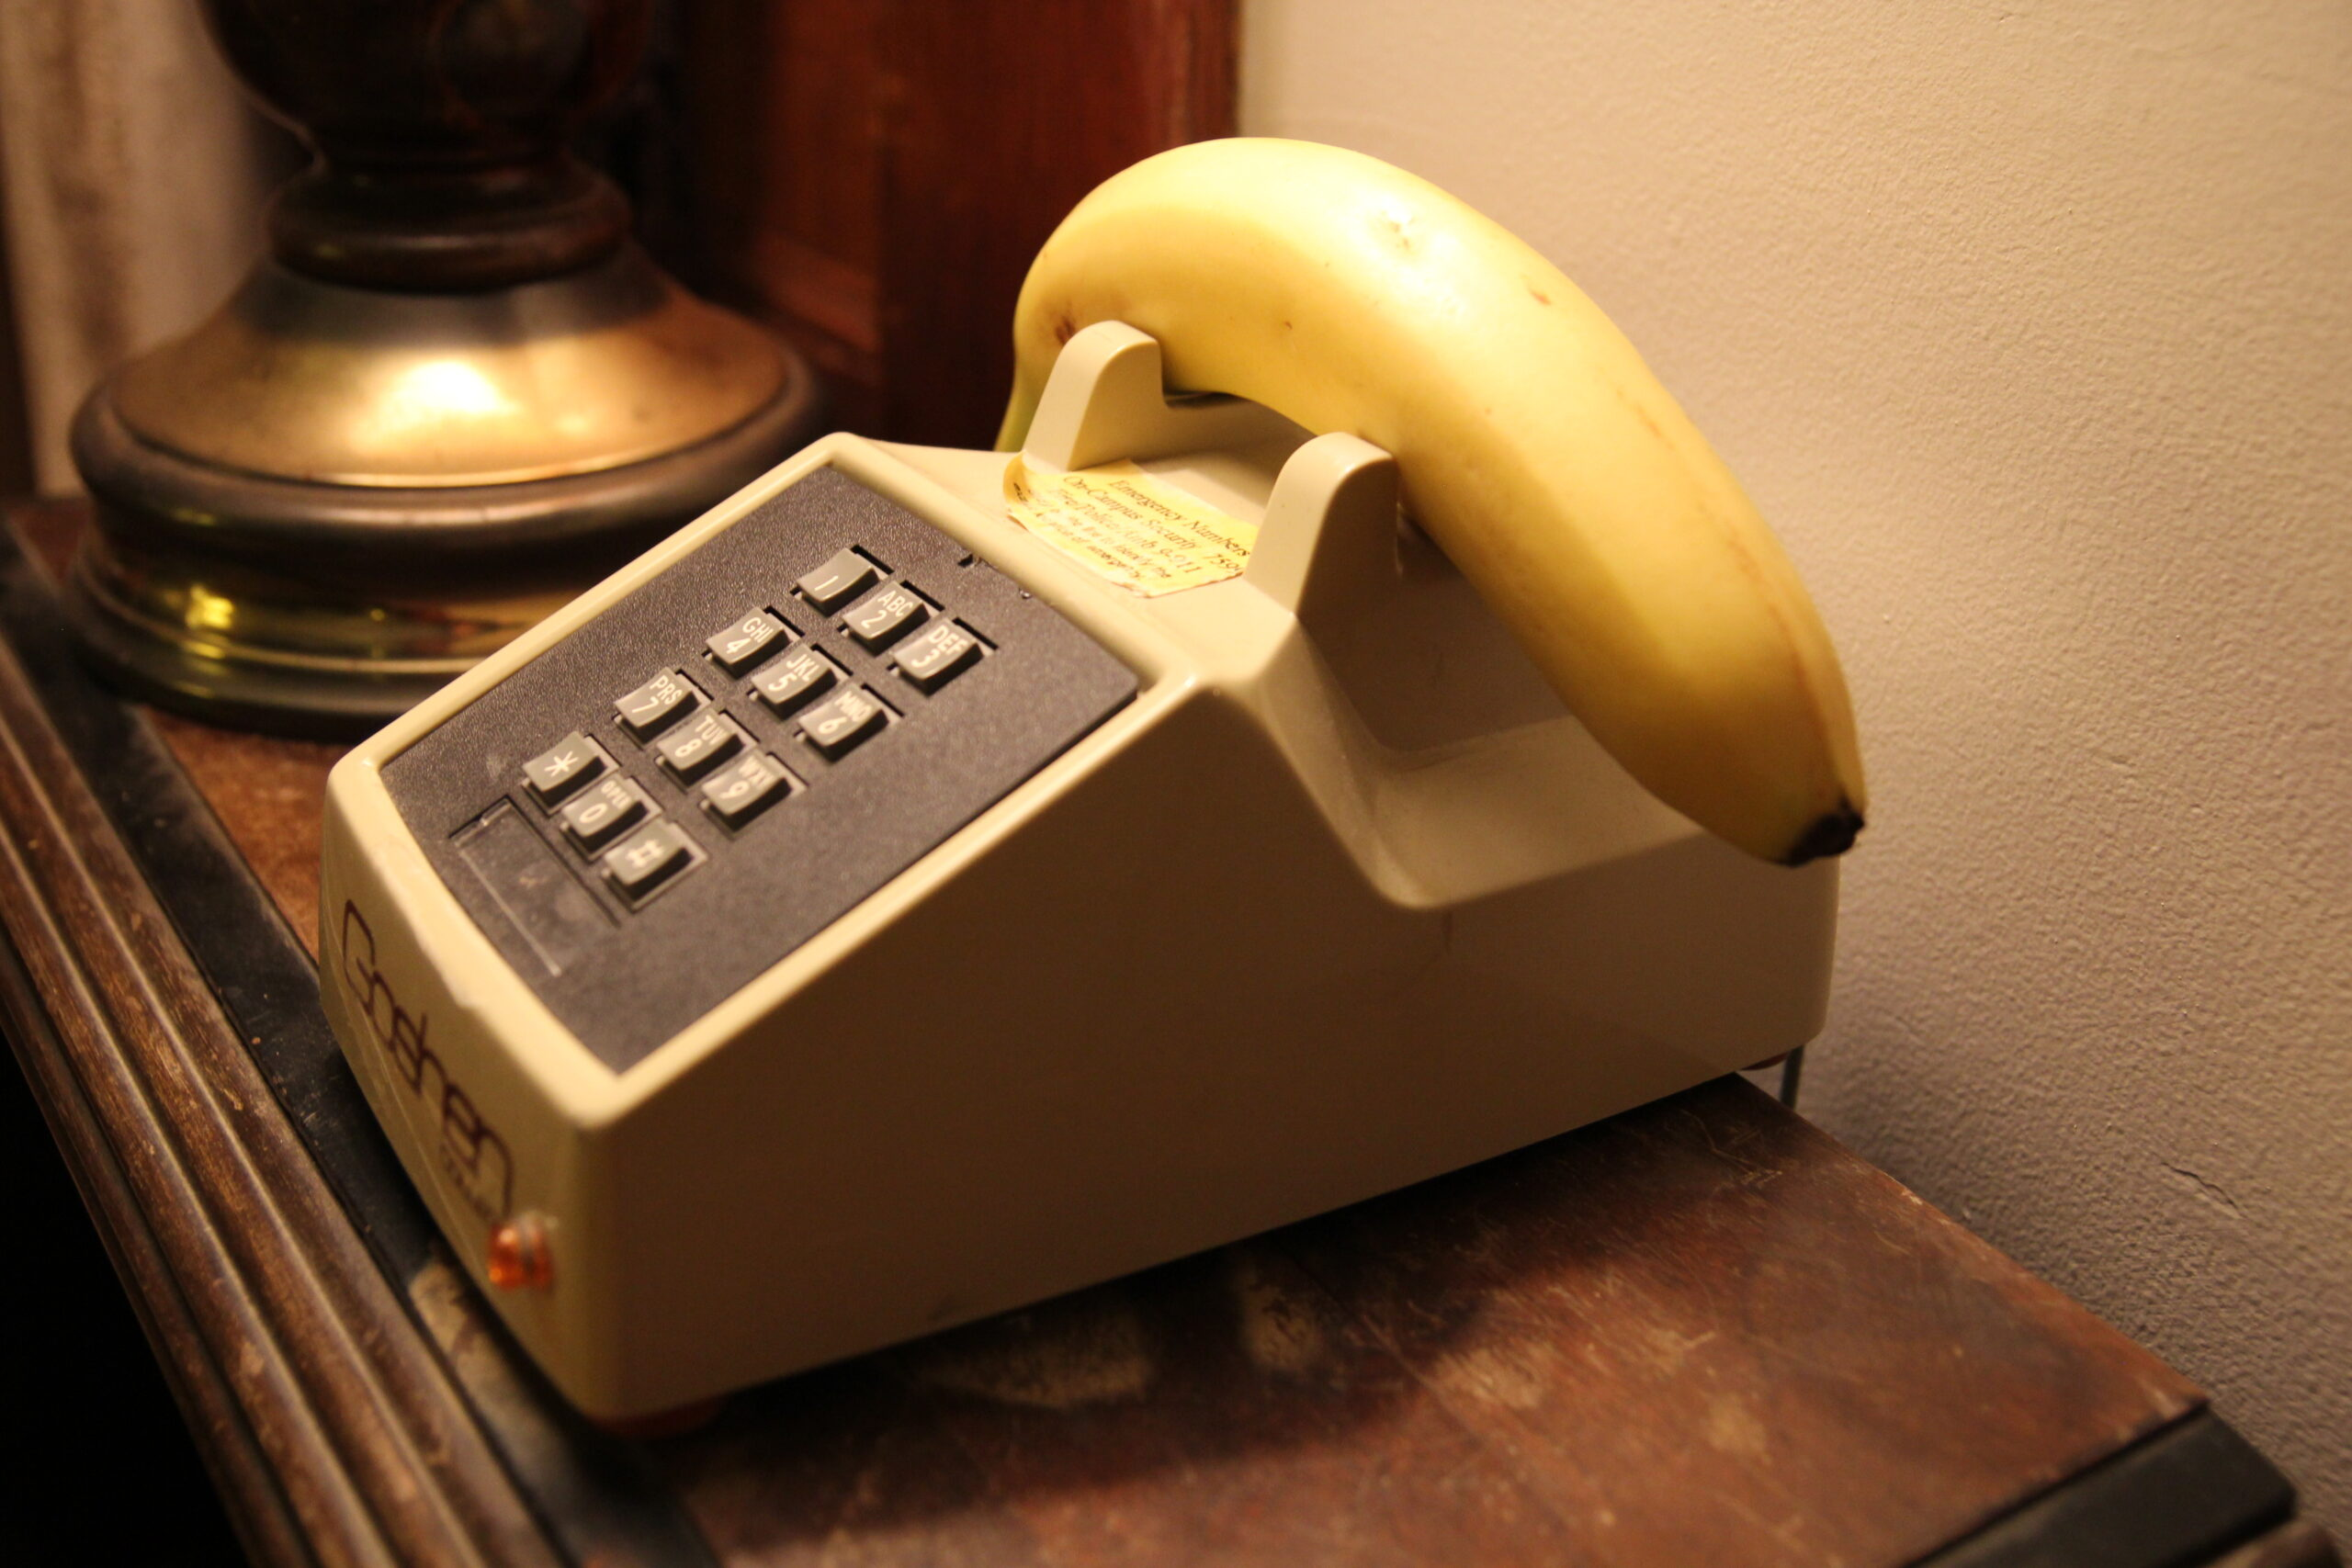 A telephone stand with a banana instead of a telephone